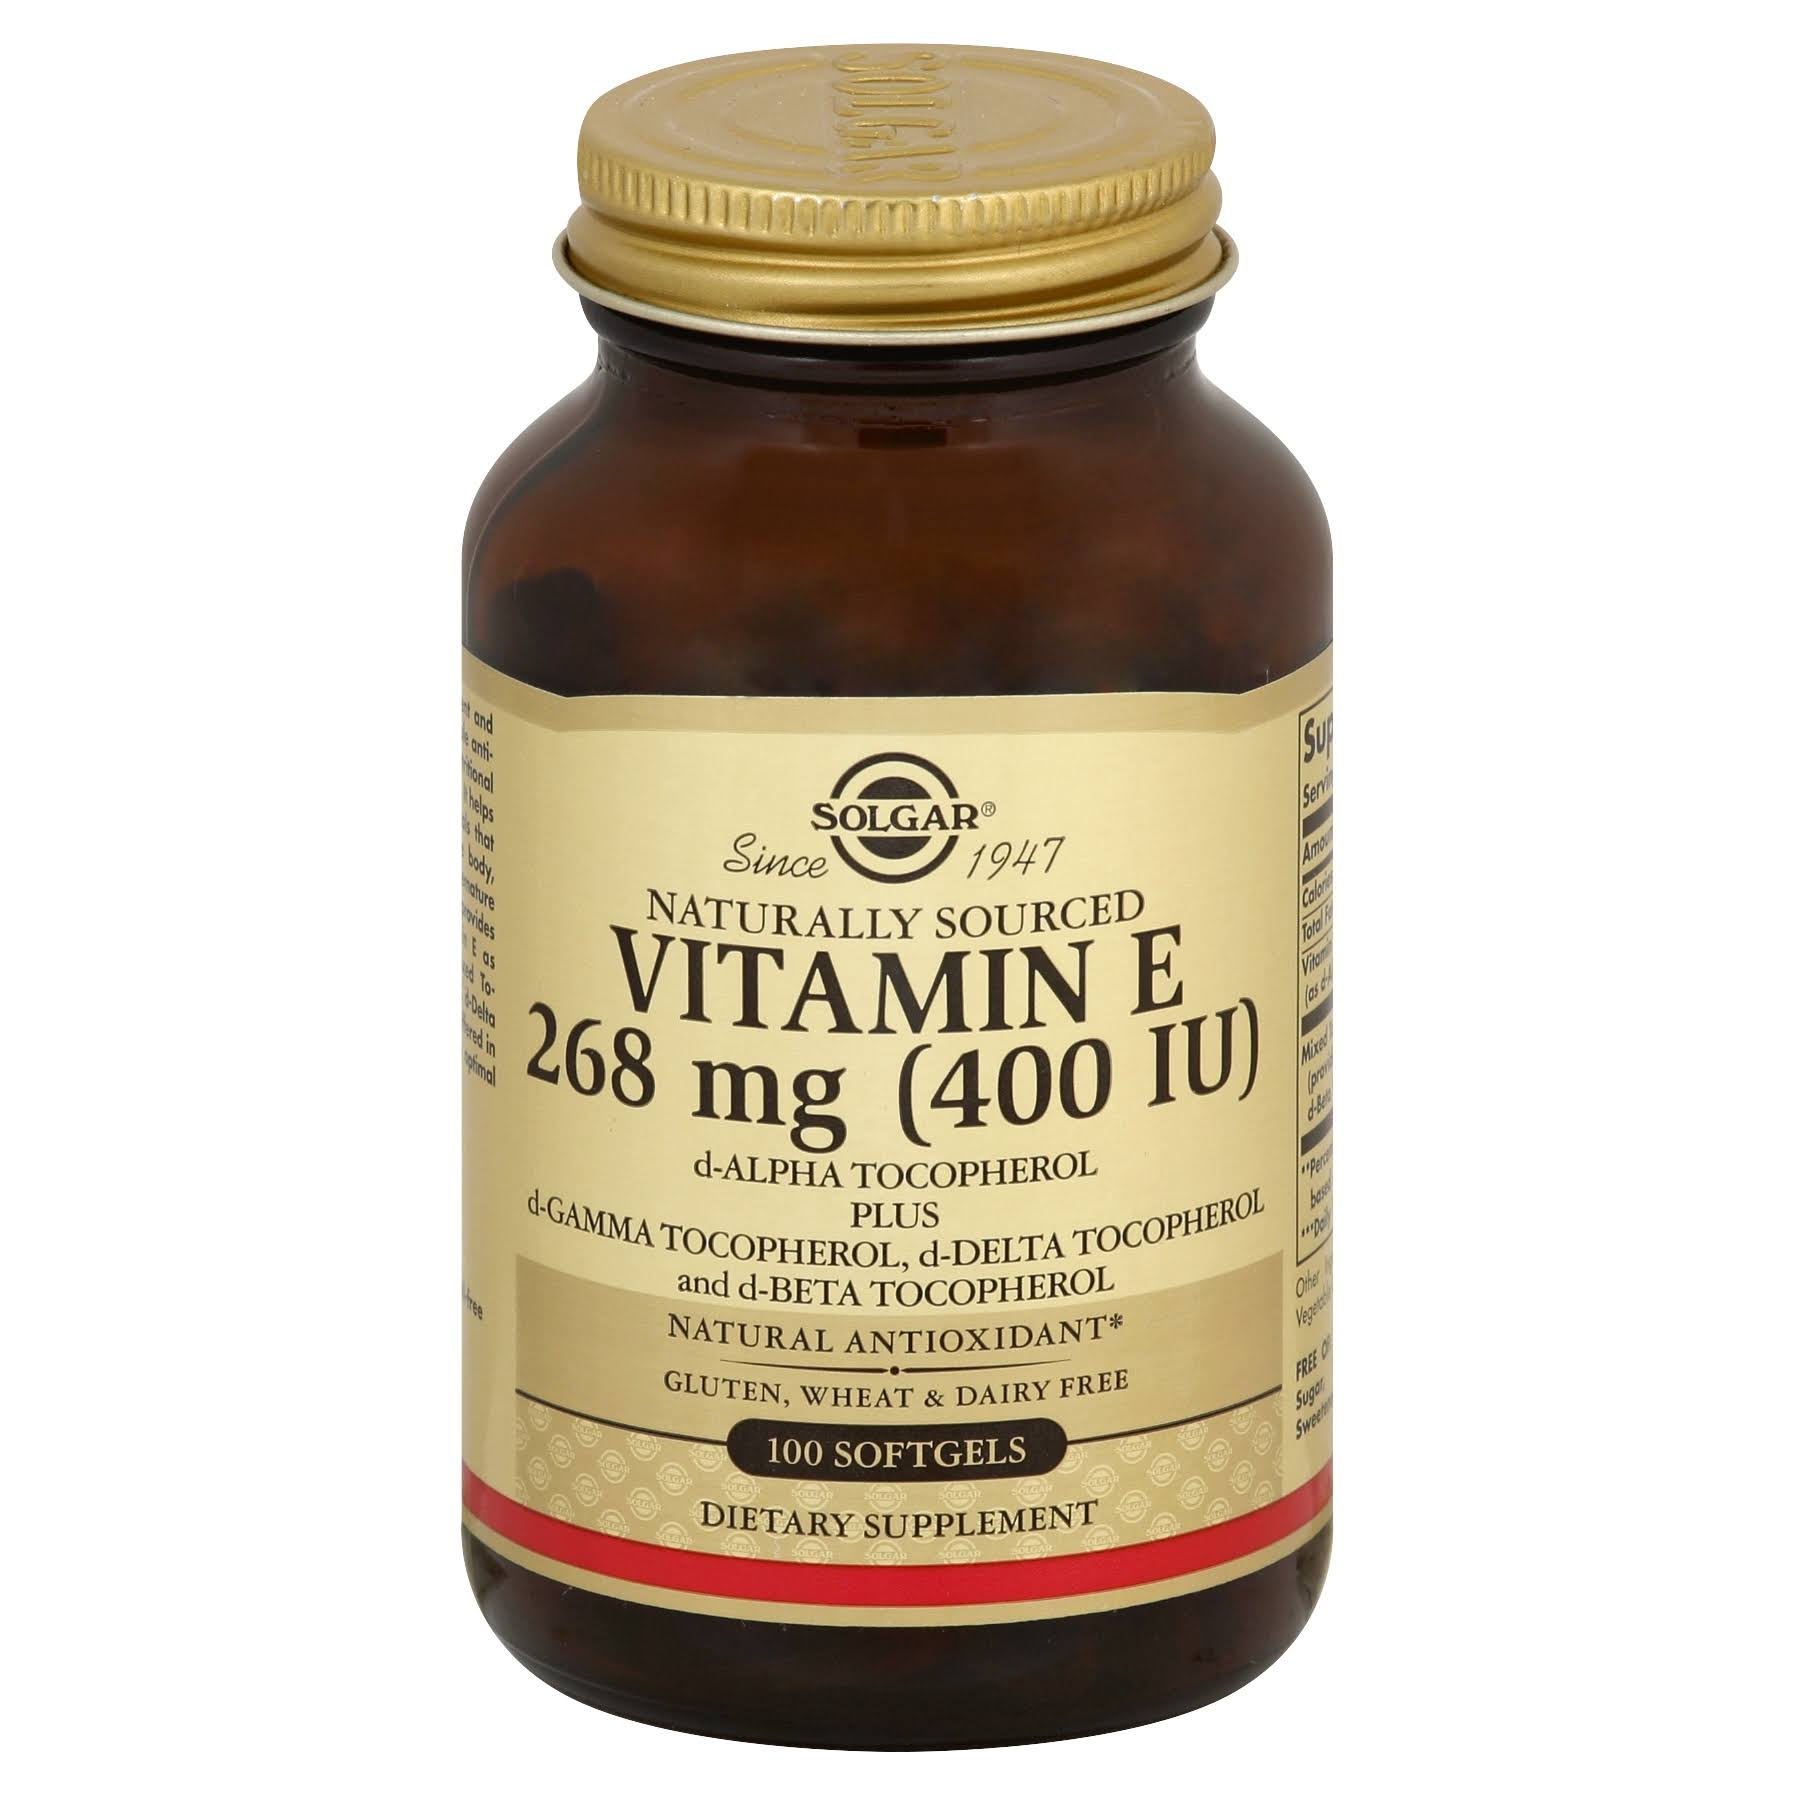 Solgar Vitamin E, 268 mg (400 IU), Softgels - 100 softgels